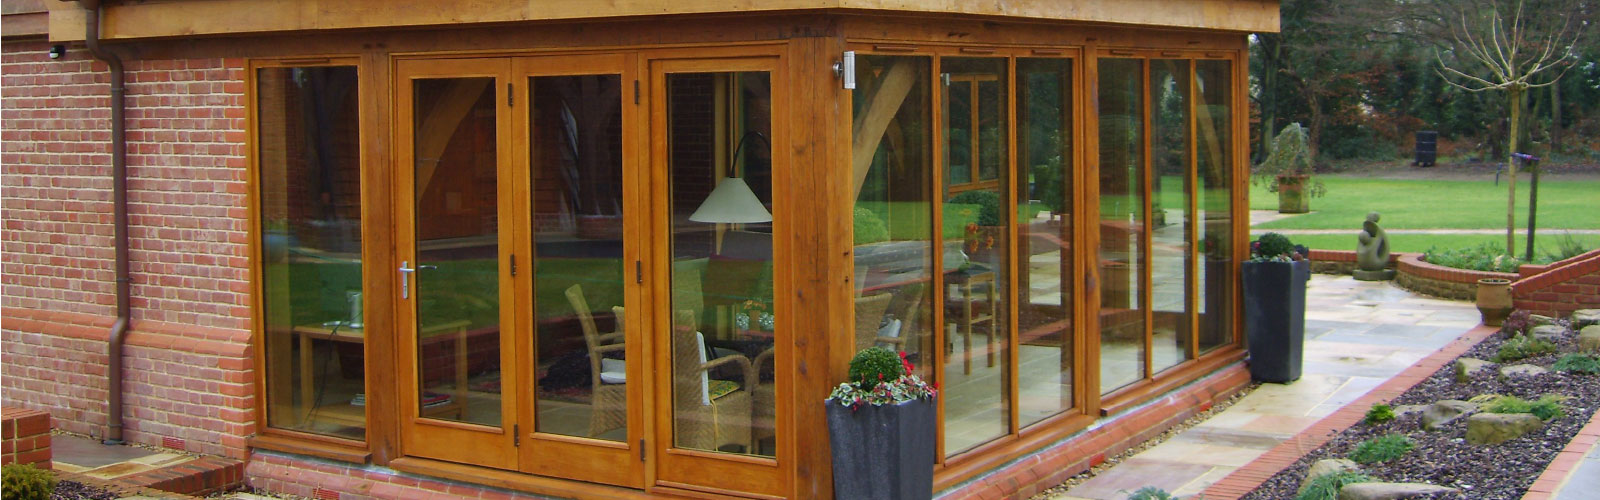 Oak-Screen-Doors